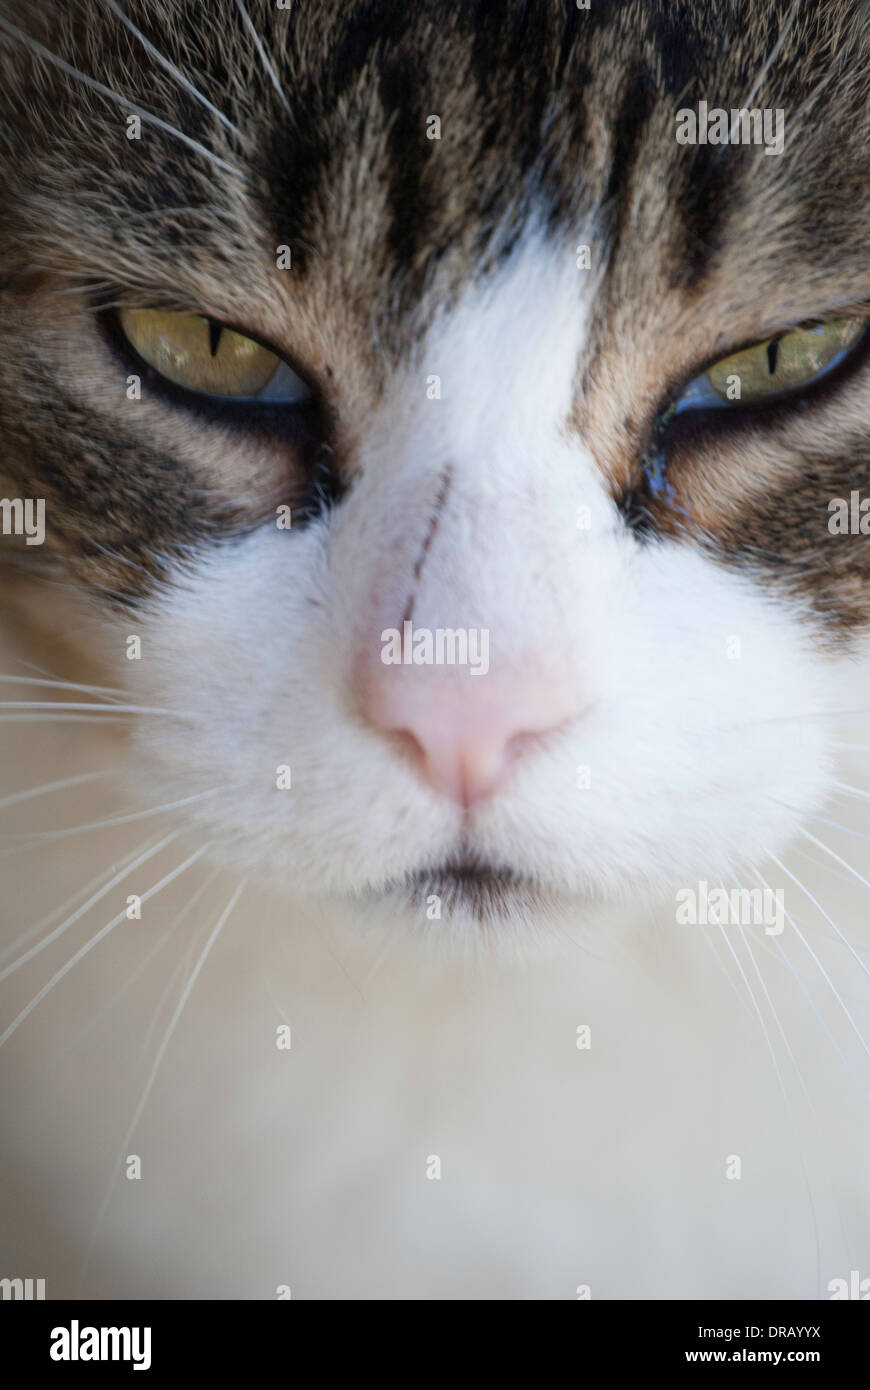 Close up of mature male domestic cat's face, with white, gray, brown, stripes, and a scratch on his nose. Stock Photo